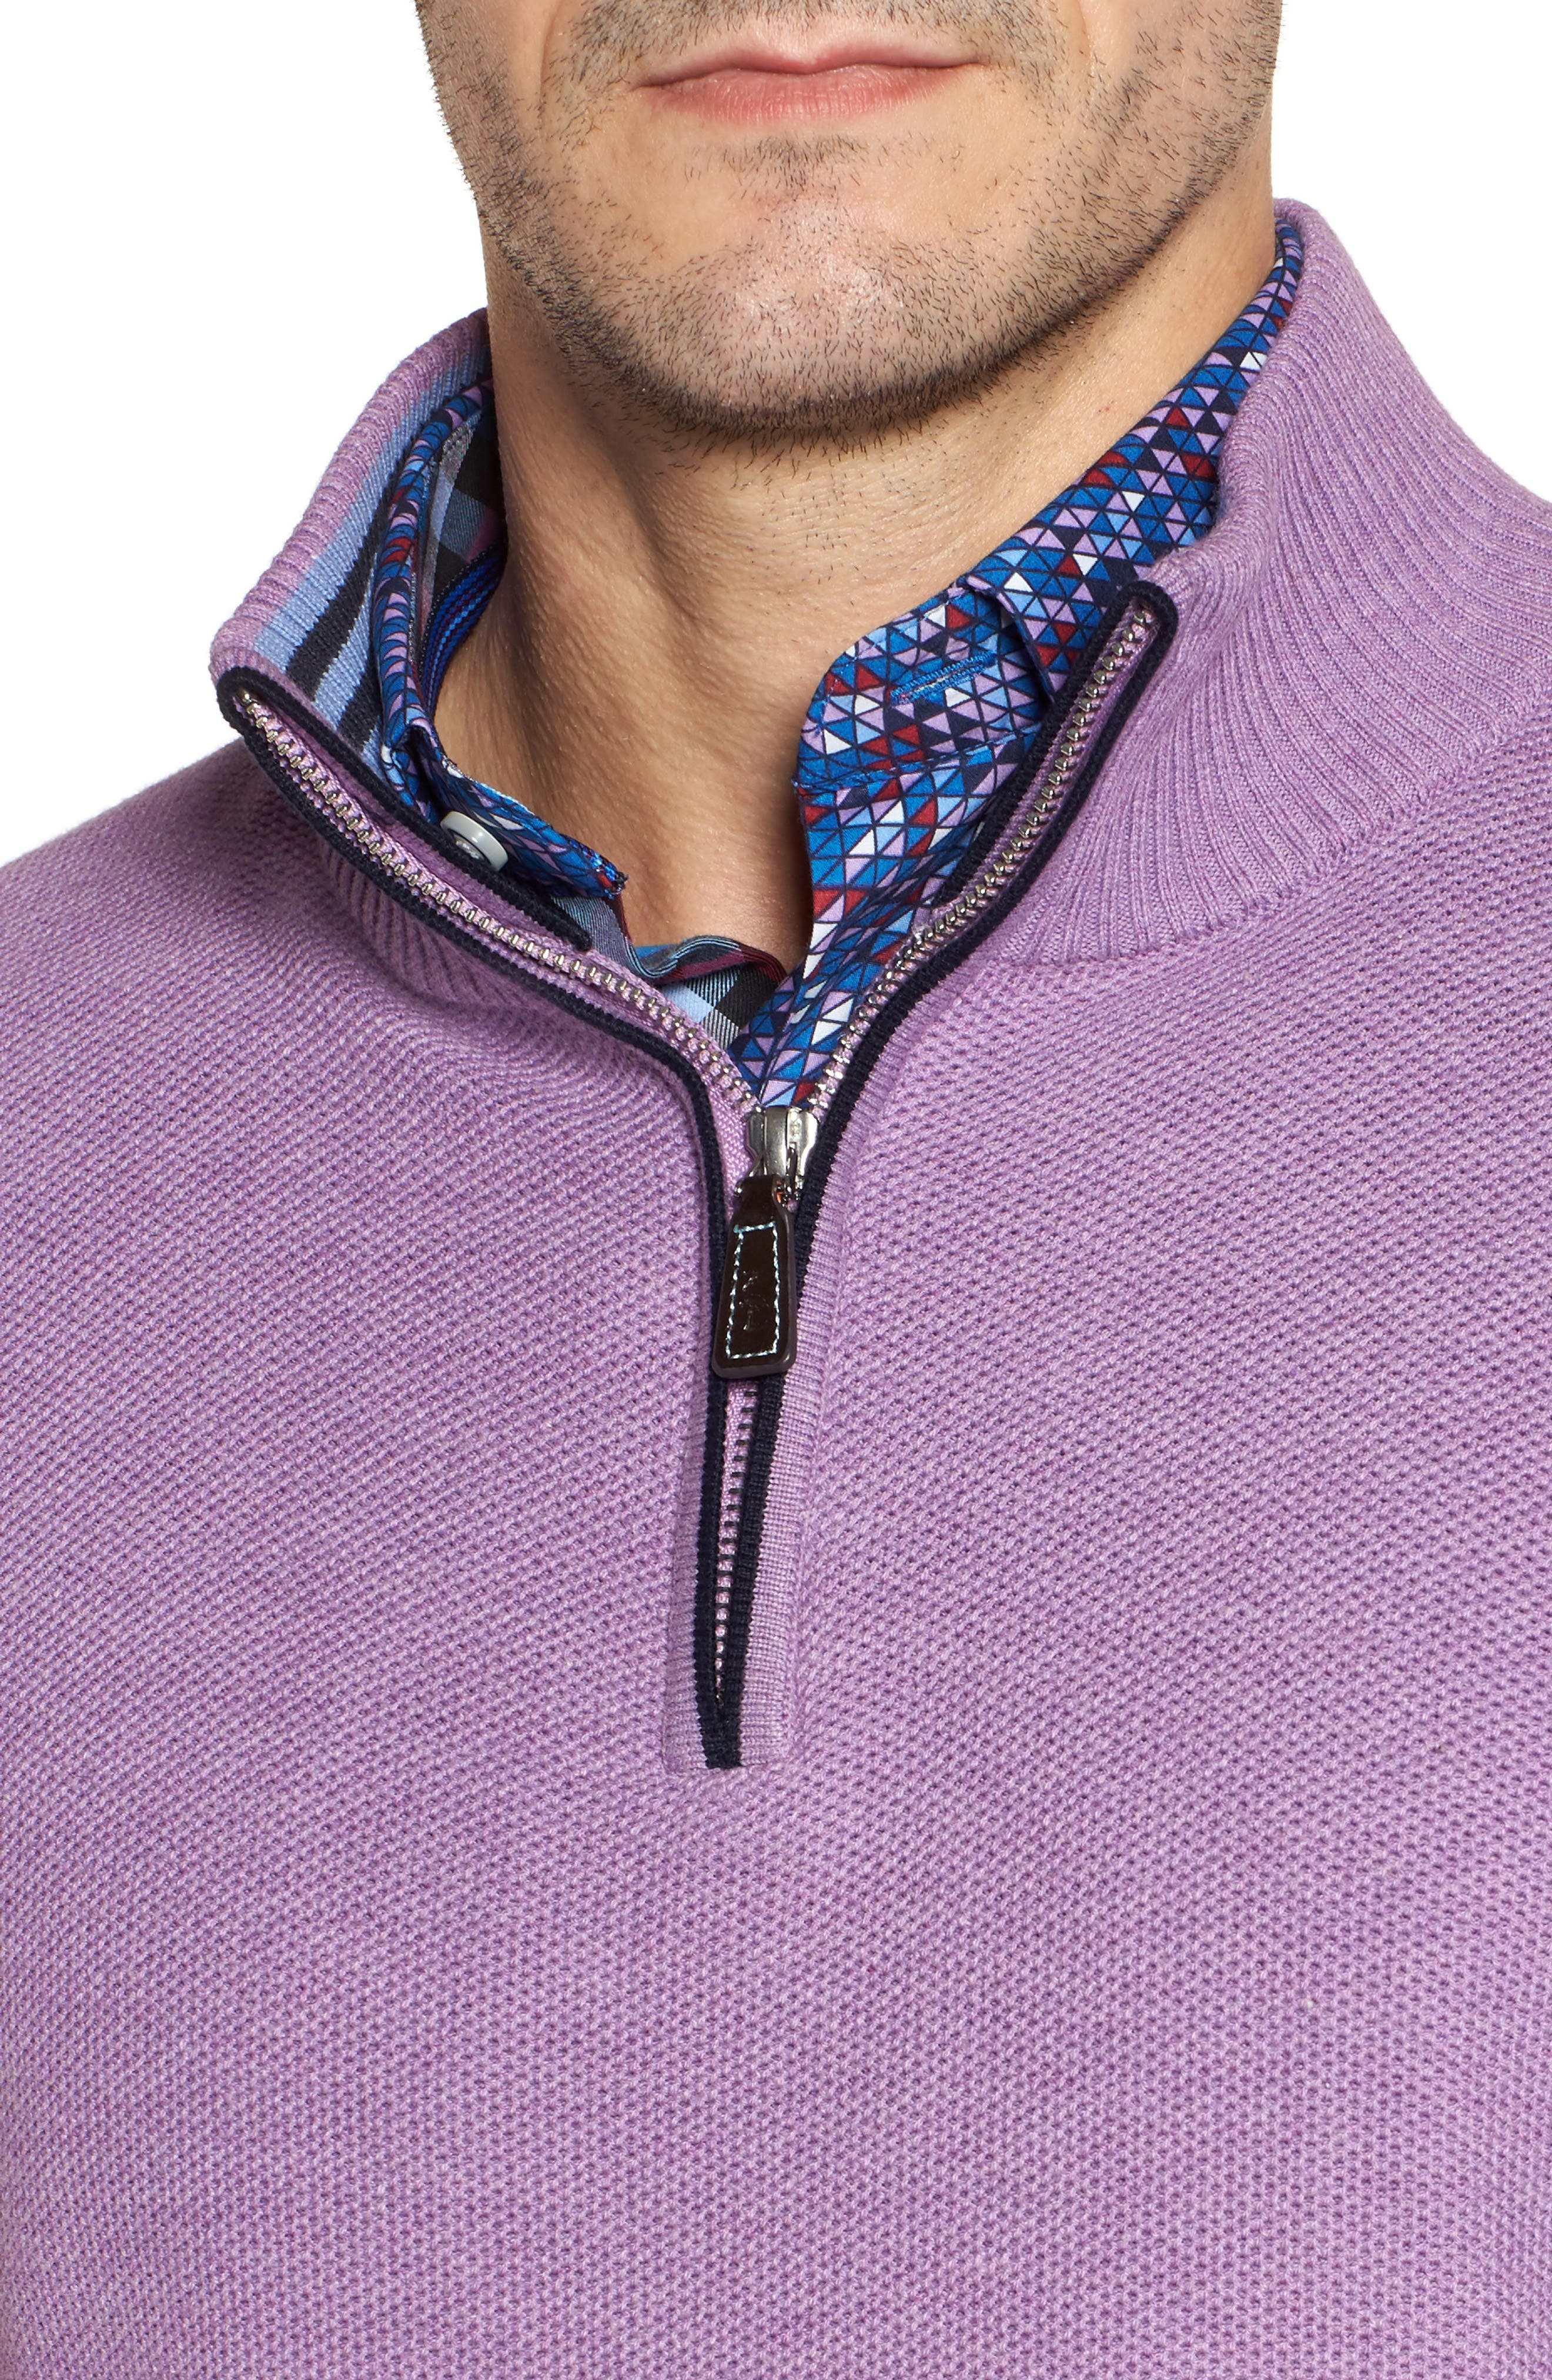 Ossun Tipped Quarter Zip Sweater,                             Alternate thumbnail 4, color,